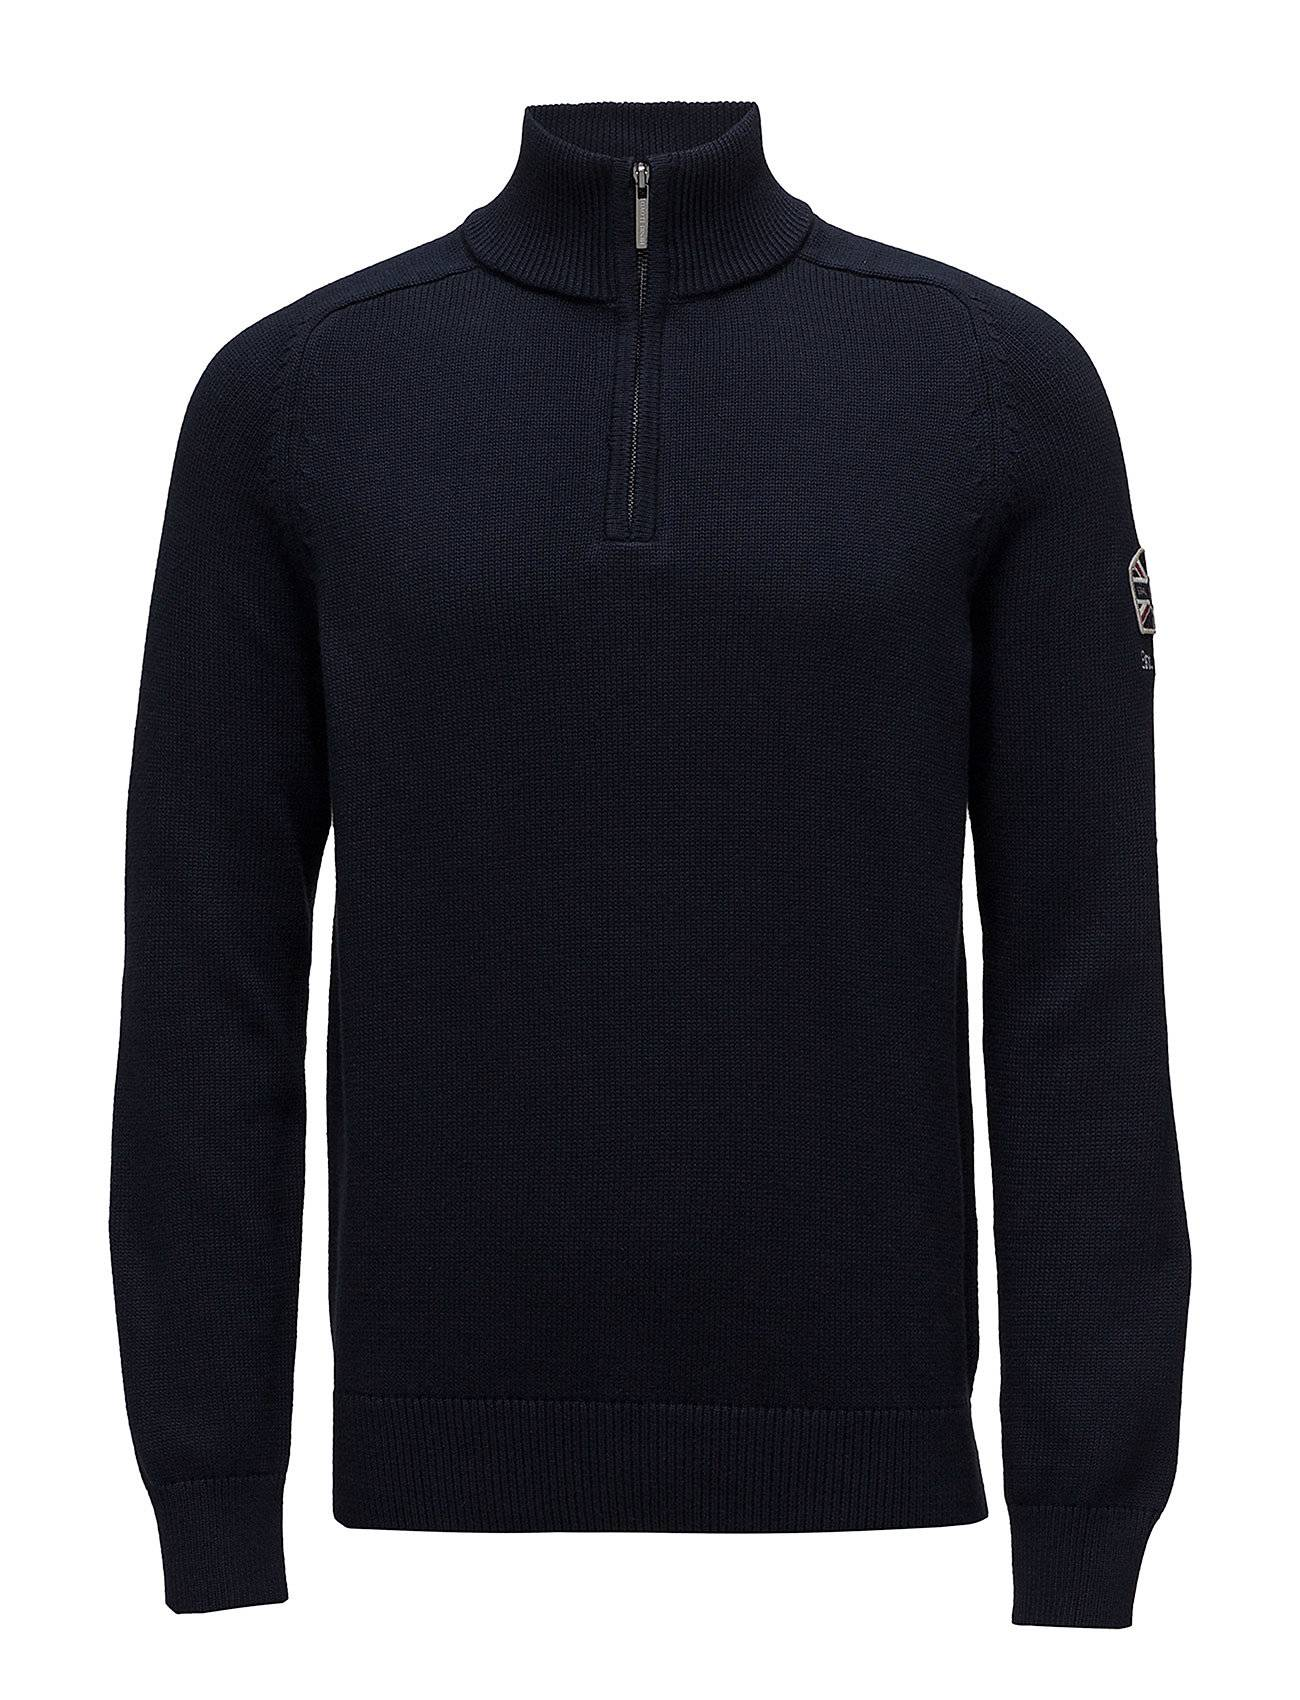 Henri Lloyd Berson Branded Regular Half Zip Knit